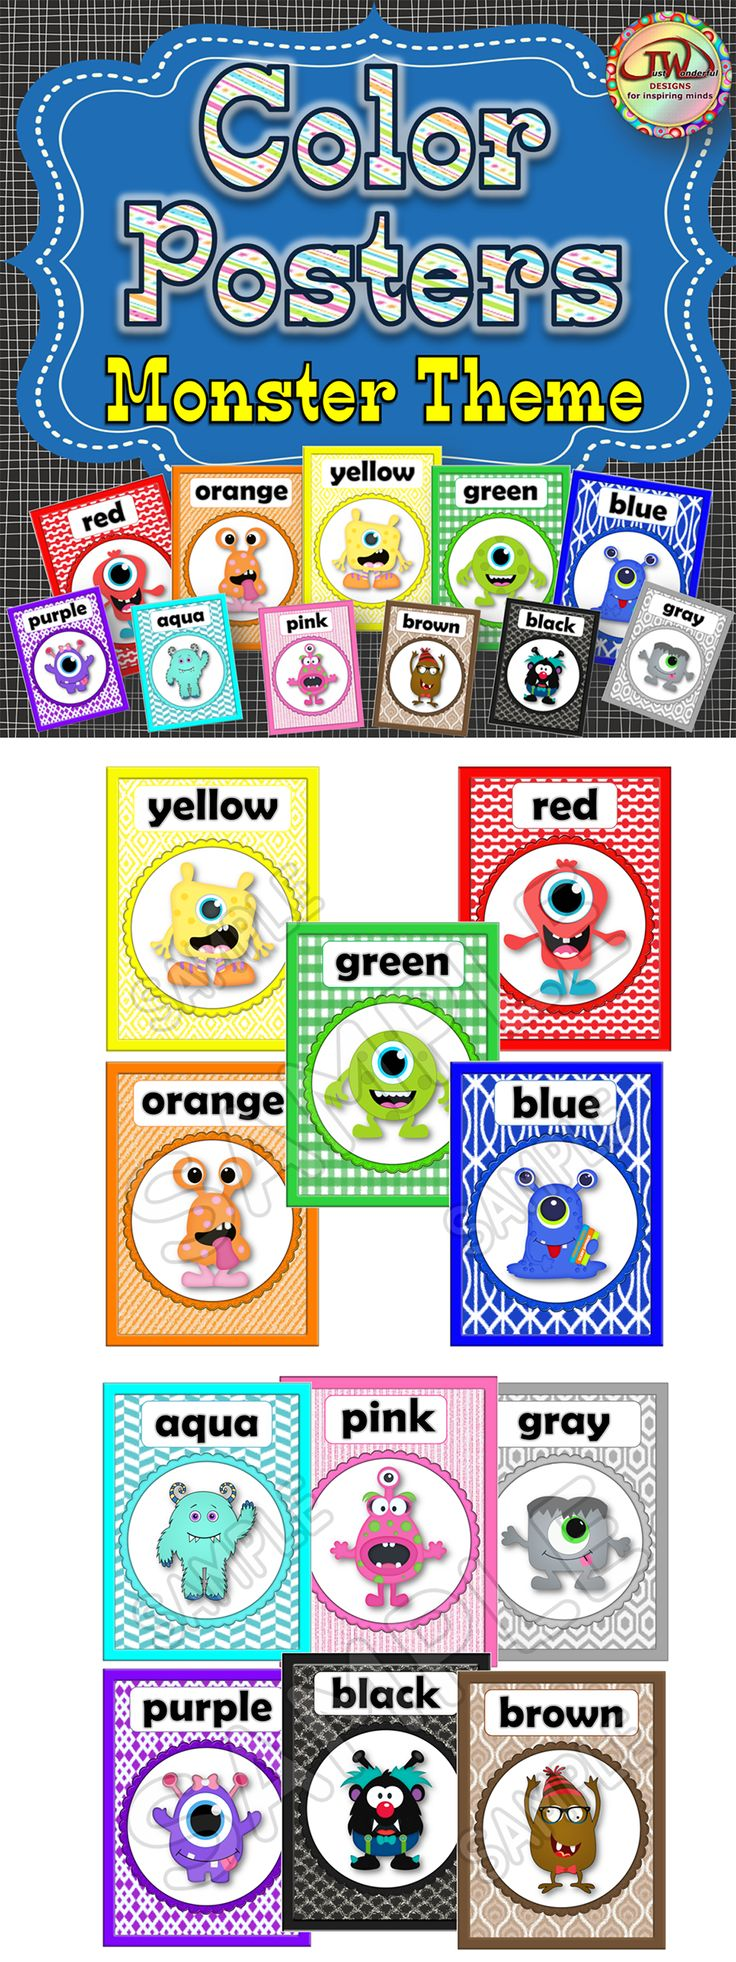 Part of my MONSTER THEME CLASSROOM series.  These bright, bold color posters will delight early elementary students.  Coordinates with all my other monster themed classroom items found here:  https://www.teacherspayteachers.com/Store/Jwdesigns/Category/-Monster-Theme-248075